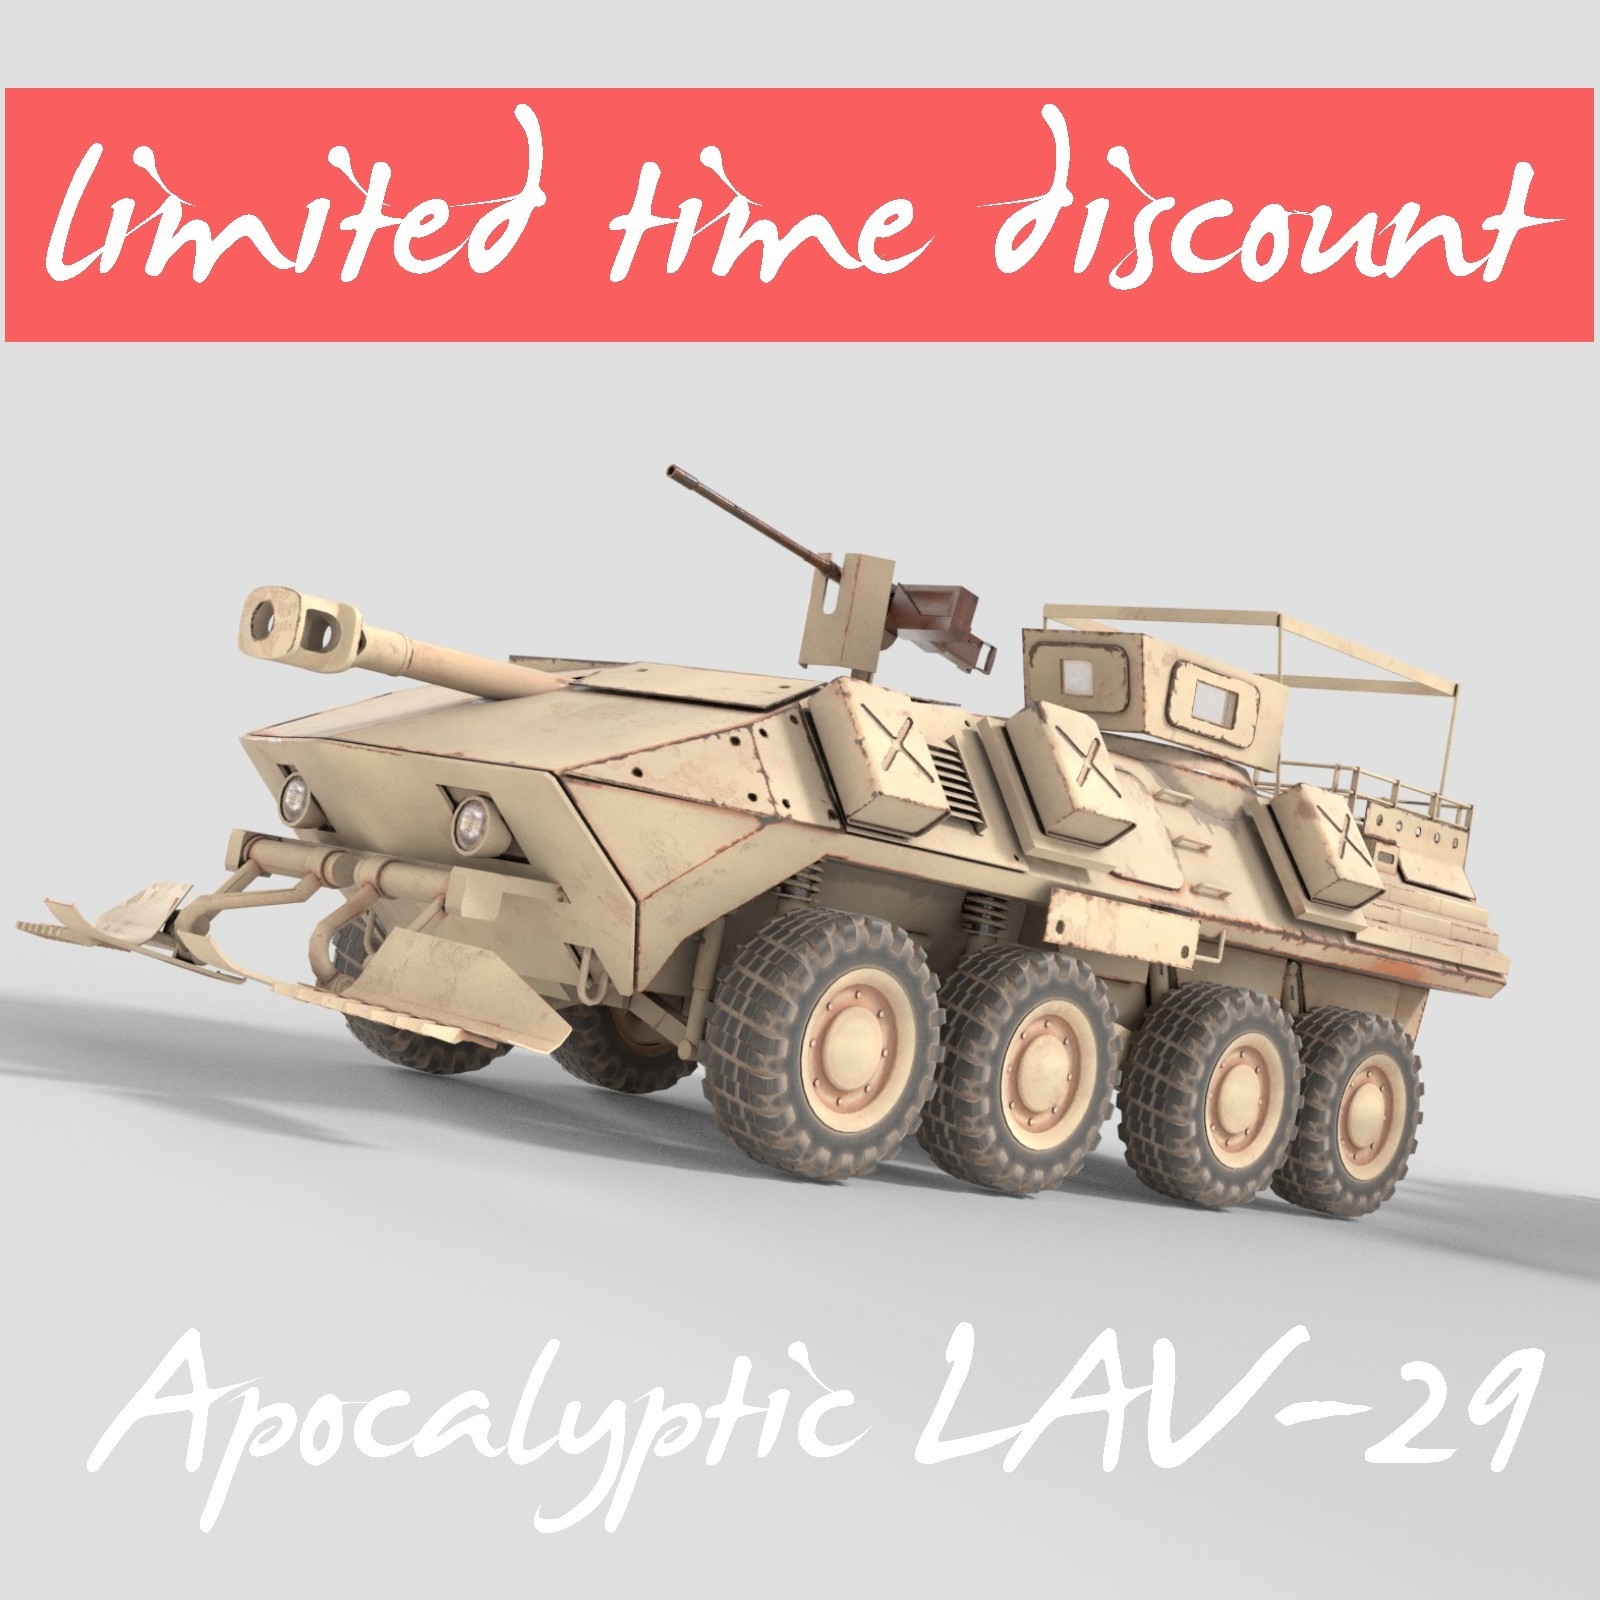 Apocalyptic LAV 25 - Extended License